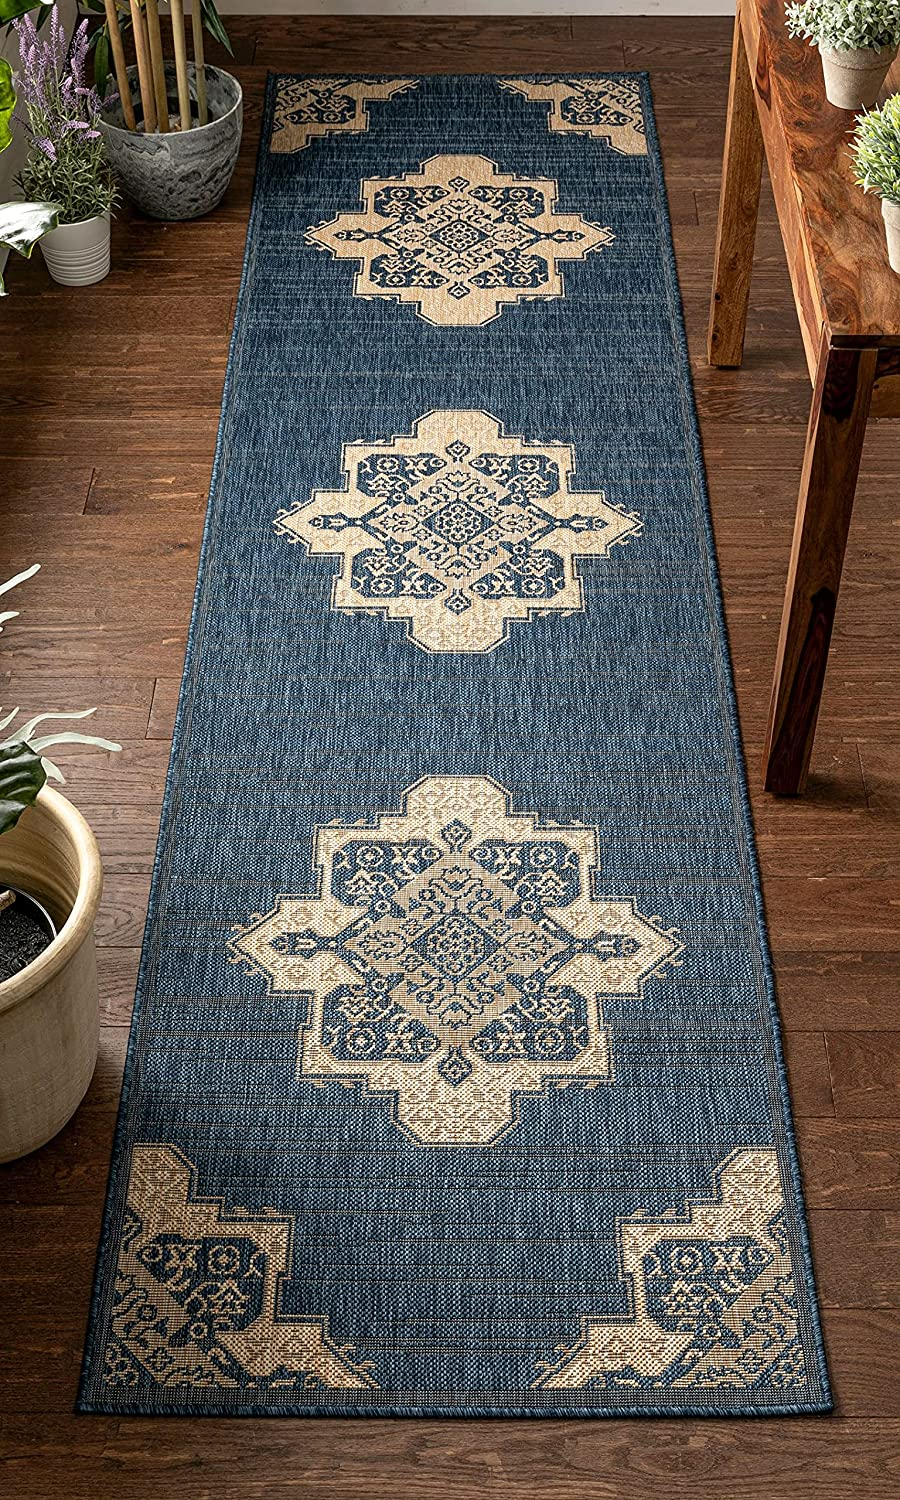 Well Woven Blom Blue Beige Indoor Outdoor Pile Orie online shopping Weave Flat Spring new work